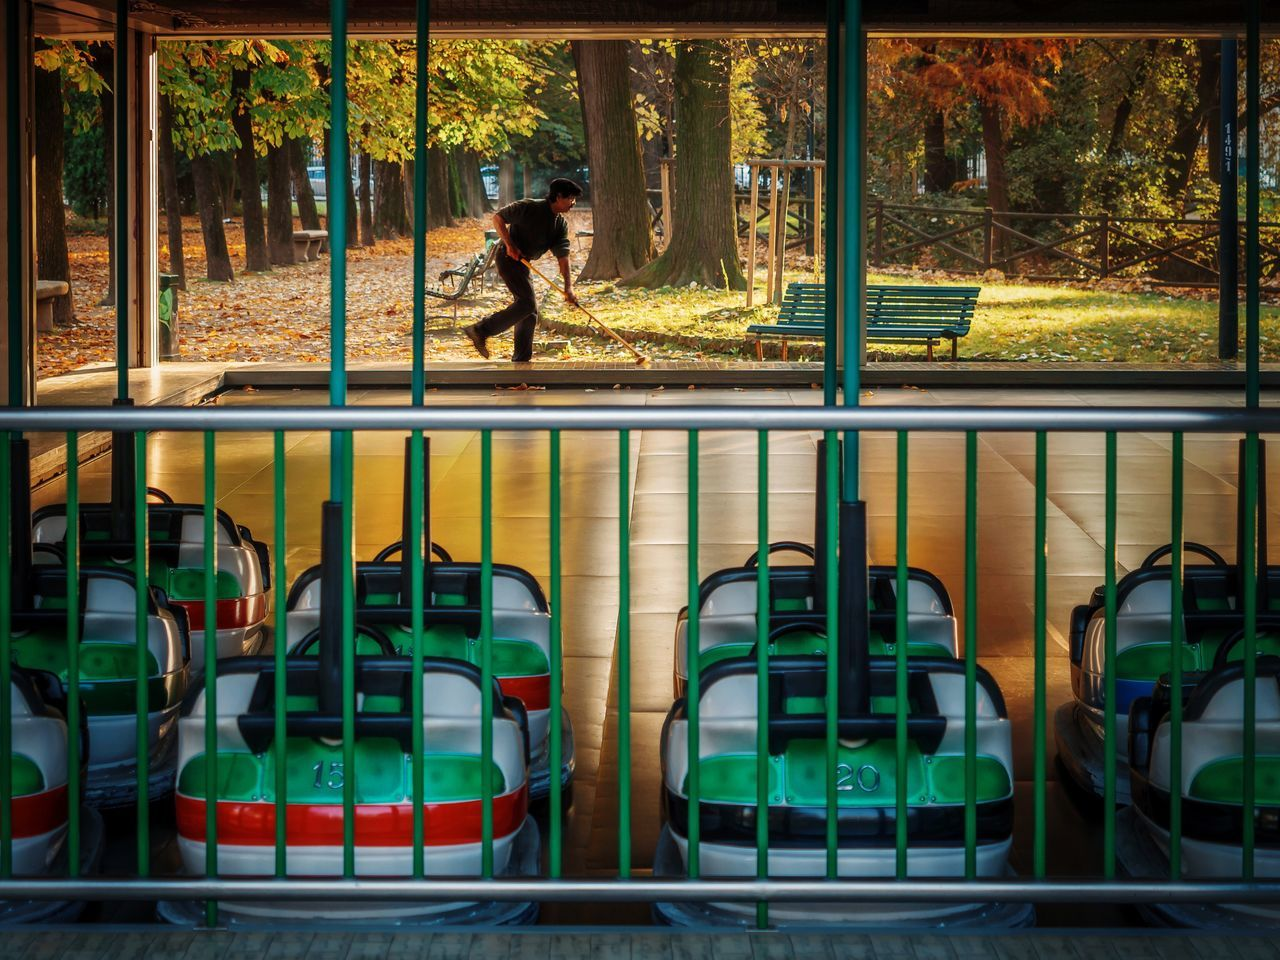 Curling // Giardini Pubblici Indro Montanelli // Autumn'16 Curling Milano Olympus Autumn Candid Streetphotography Leaves One Person Italy Snap A Stranger Beautifully Organized